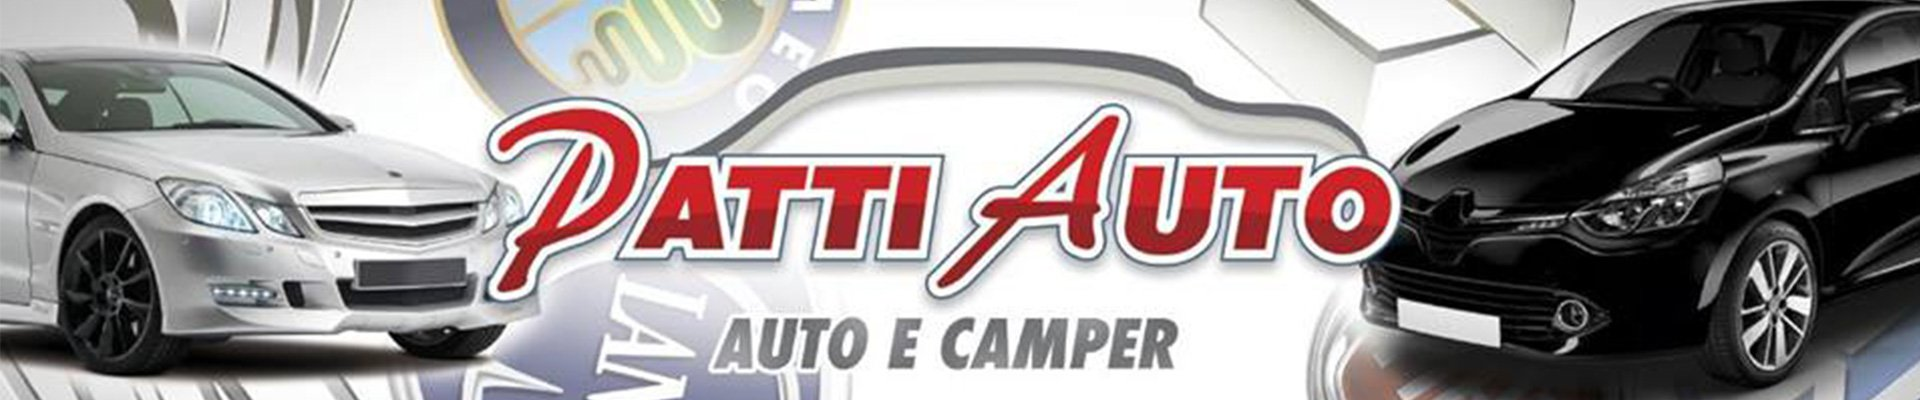 patty auto e camper